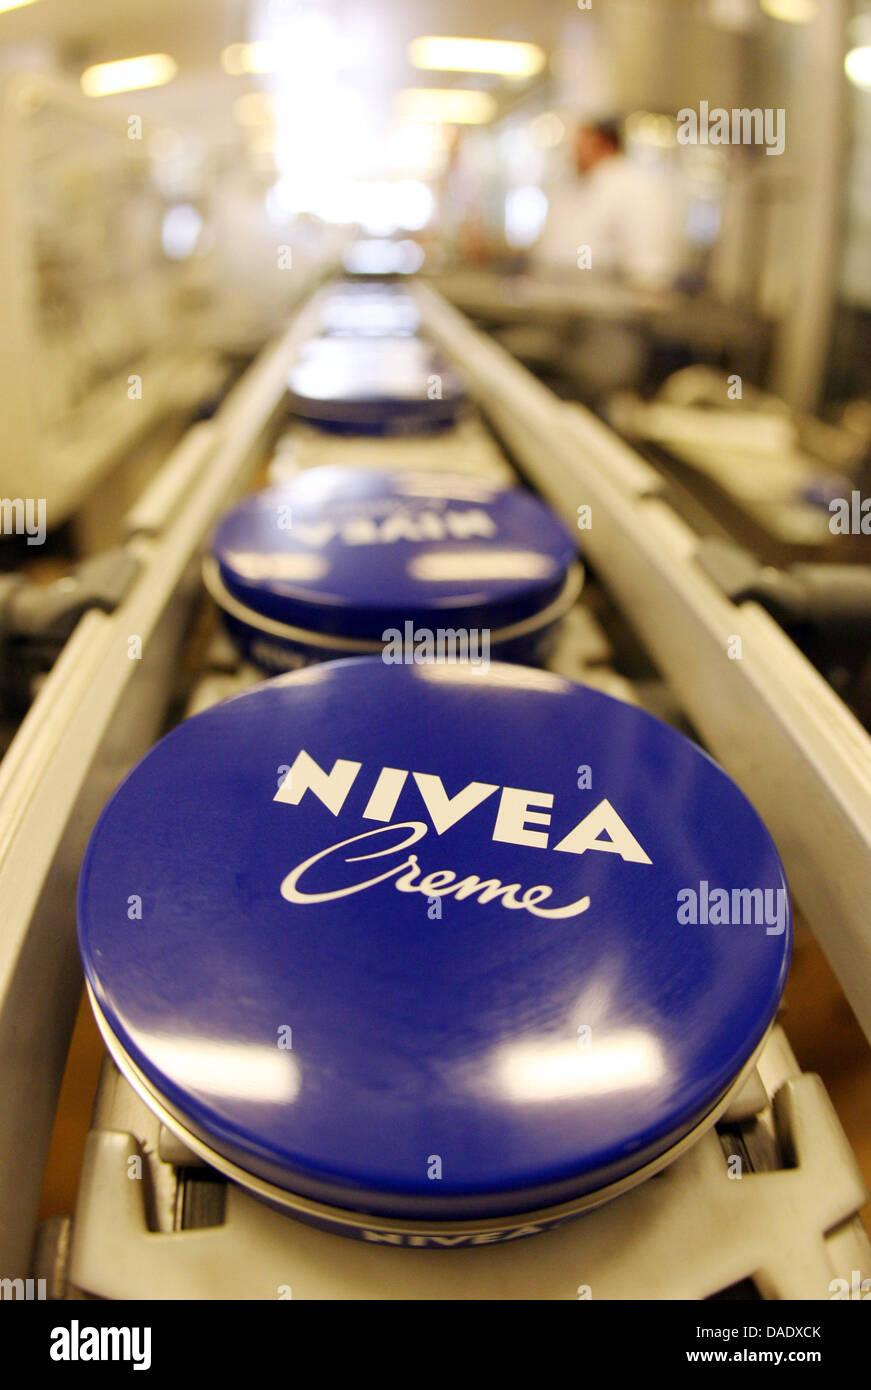 (dpa file) - A file pictuer dated 18 December 2006 shows blue NIVEA creme tins on an assembly line at the production - Stock Image